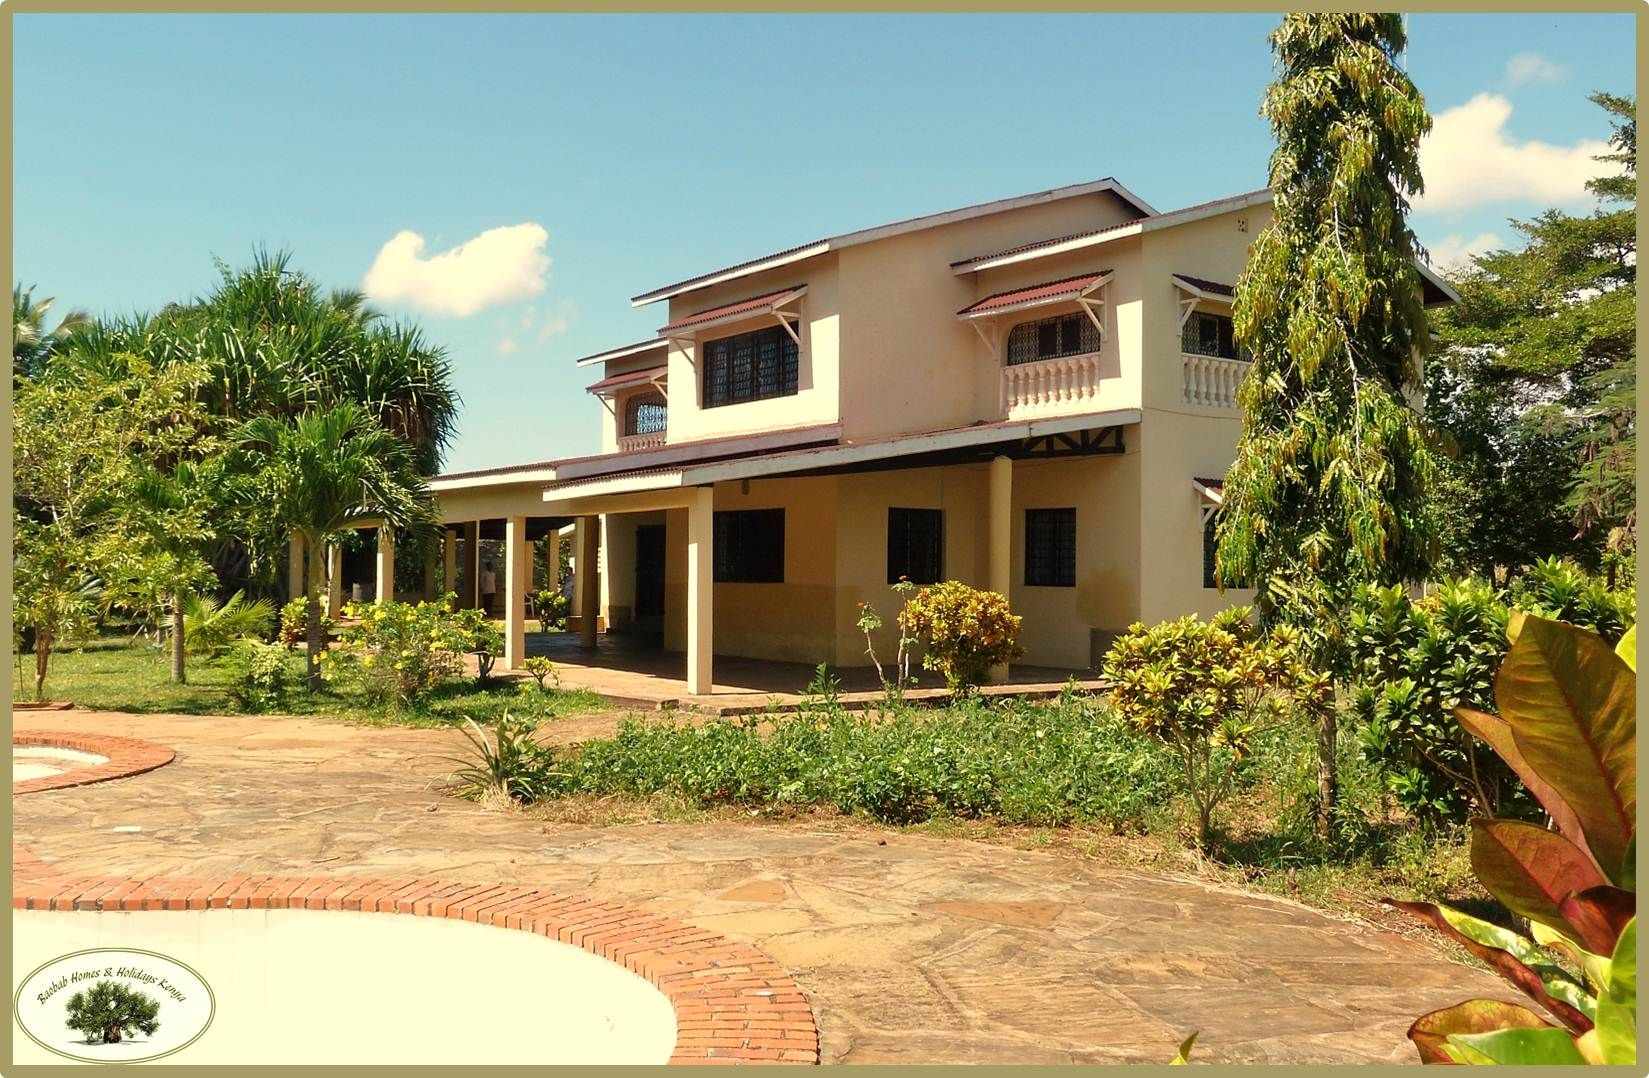 Spacious Villa On 7 000 M Compound At Tiwi Beach Md2305179 Global Real Estate Real Estate Industrial Real Estate